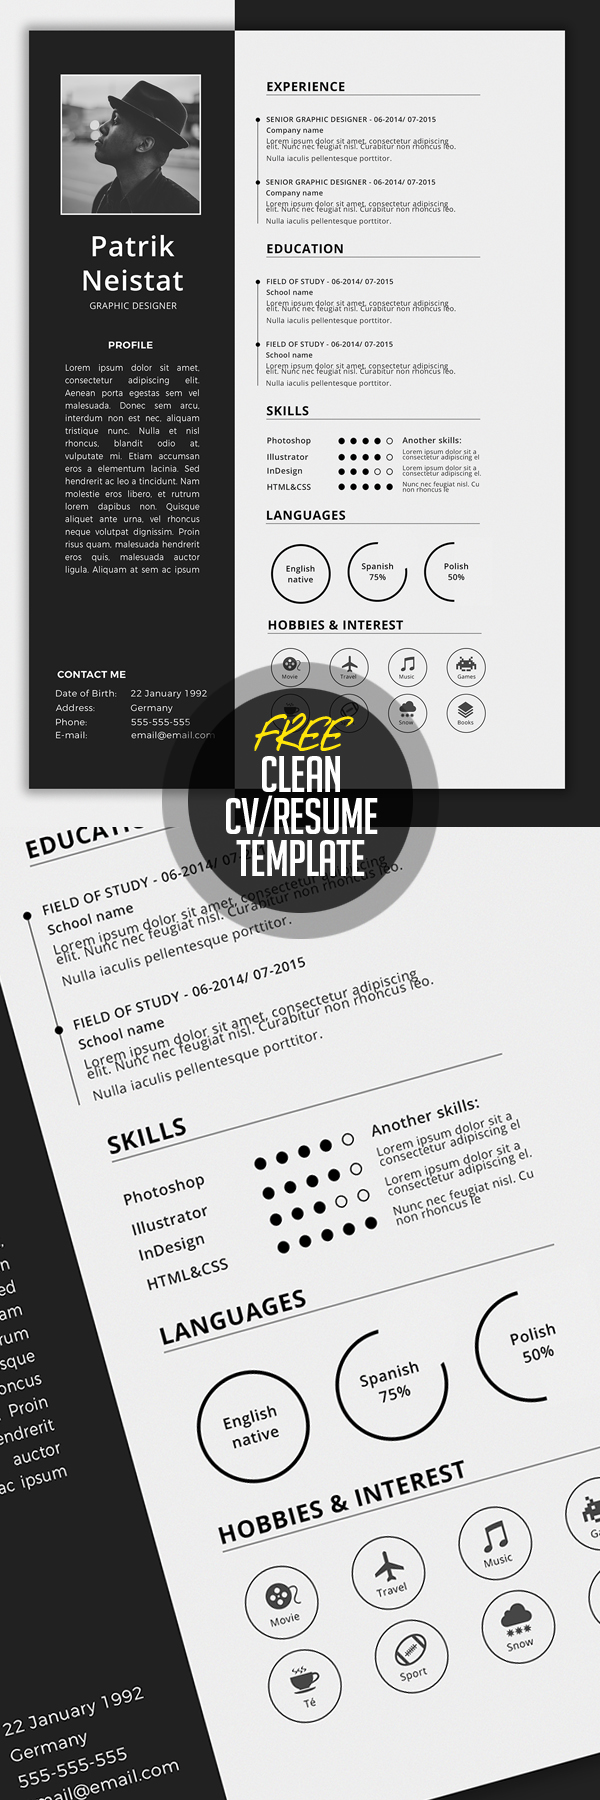 free cv resume templates best for design graphic junction template emt sample shipper Resume Resume Templates 2019 Download